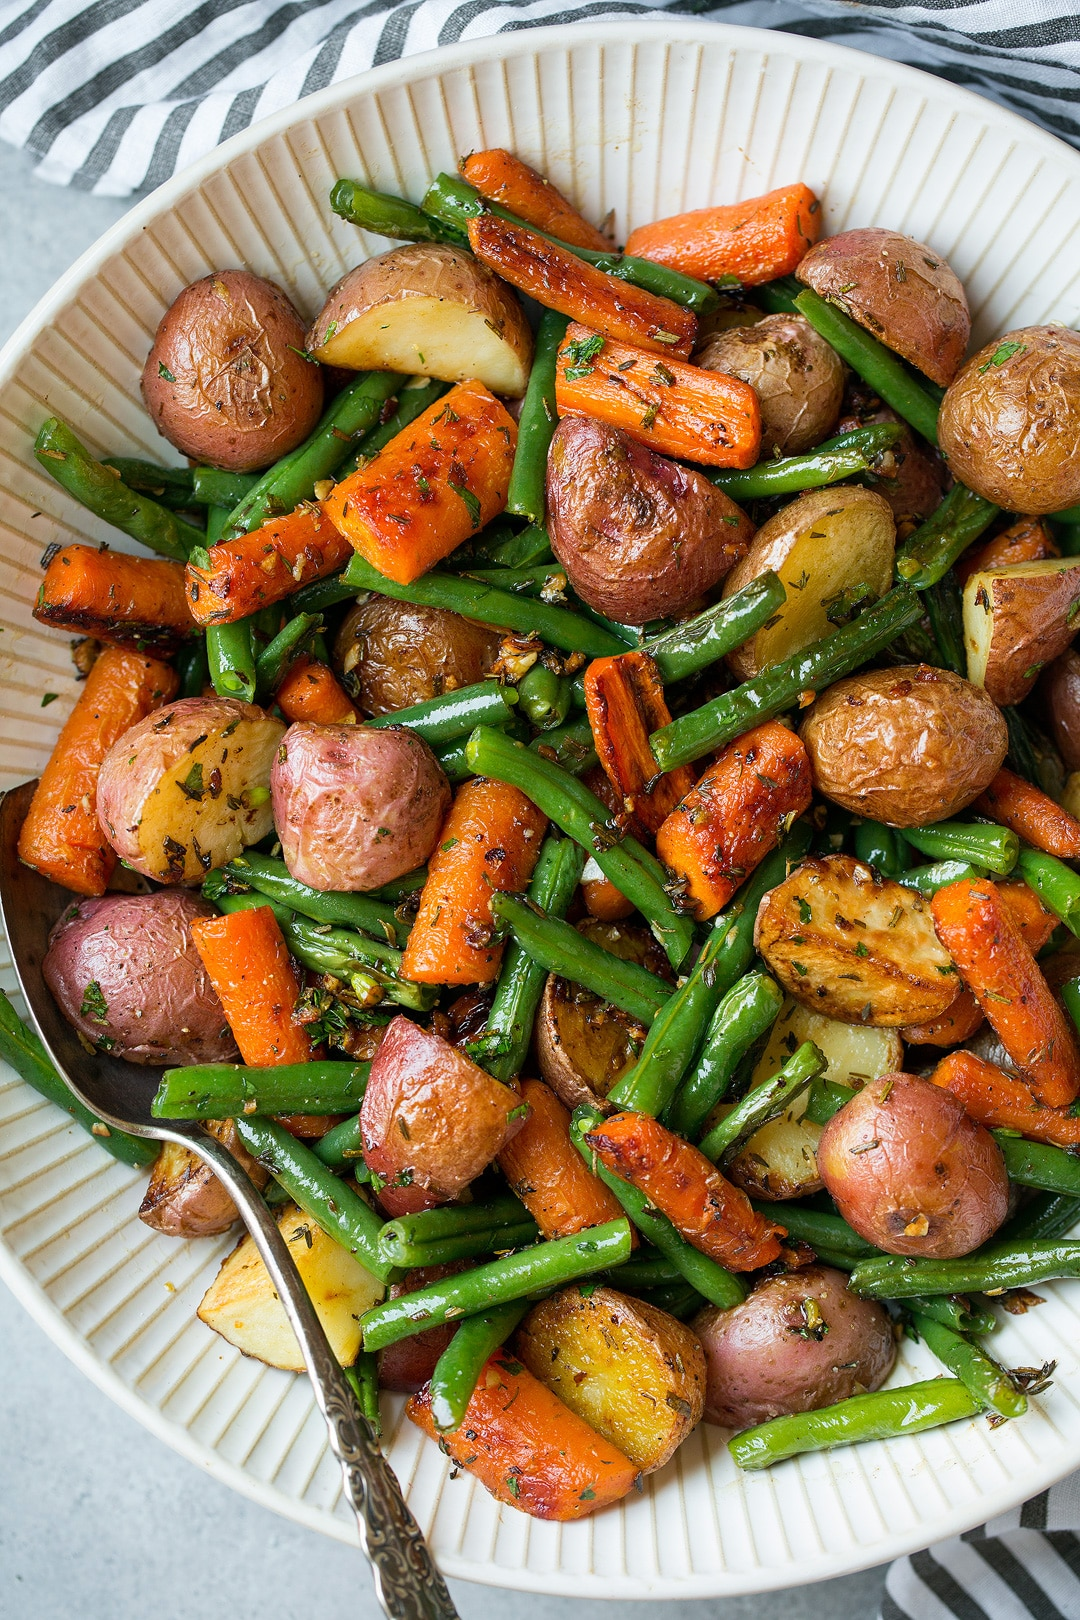 Roasted Vegetables with Garlic and Herbs